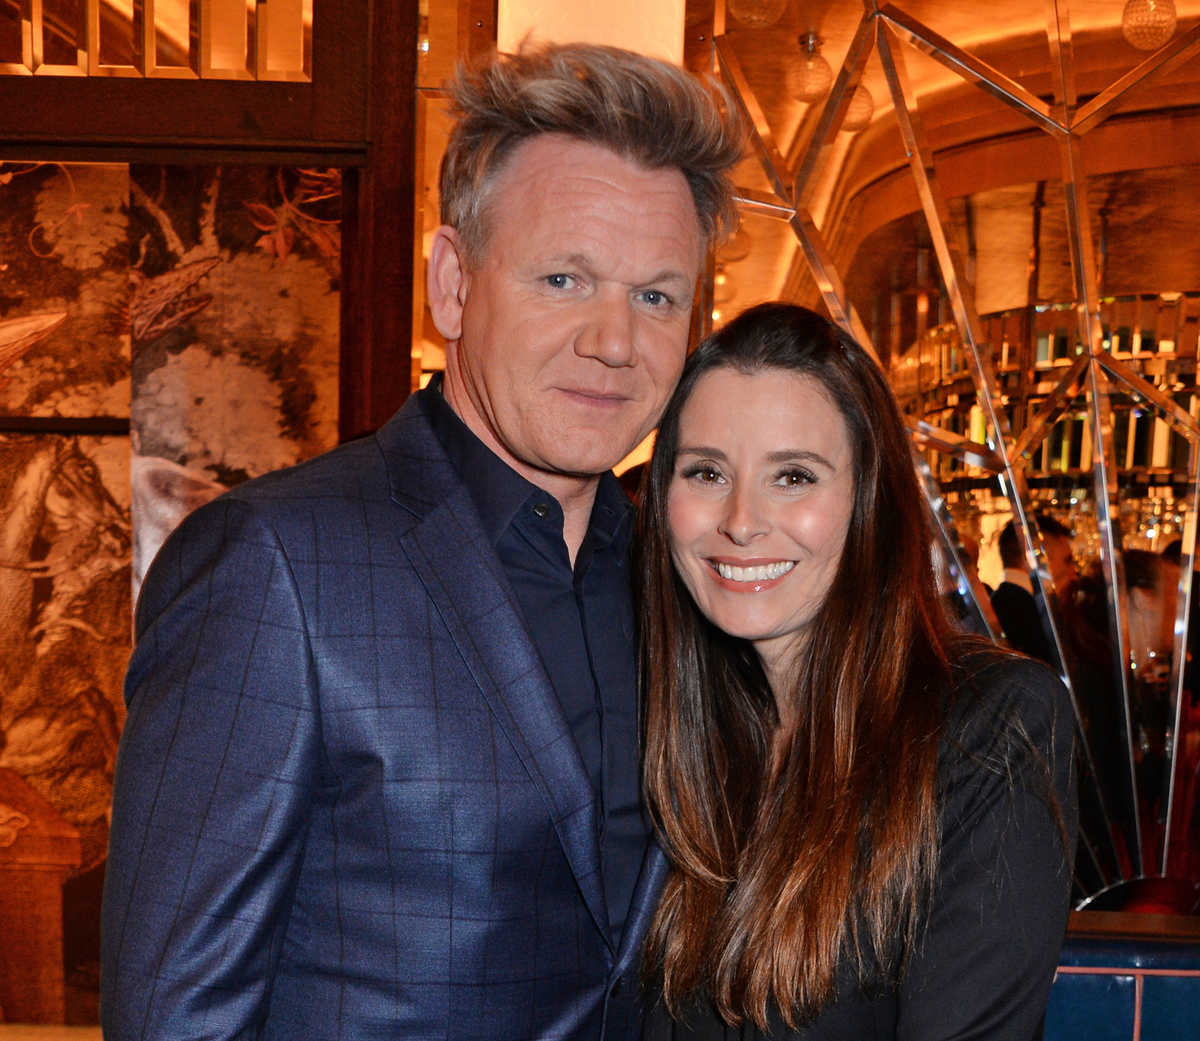 Gordon Ramsay and Tana Ramsay attend the GQ dinner